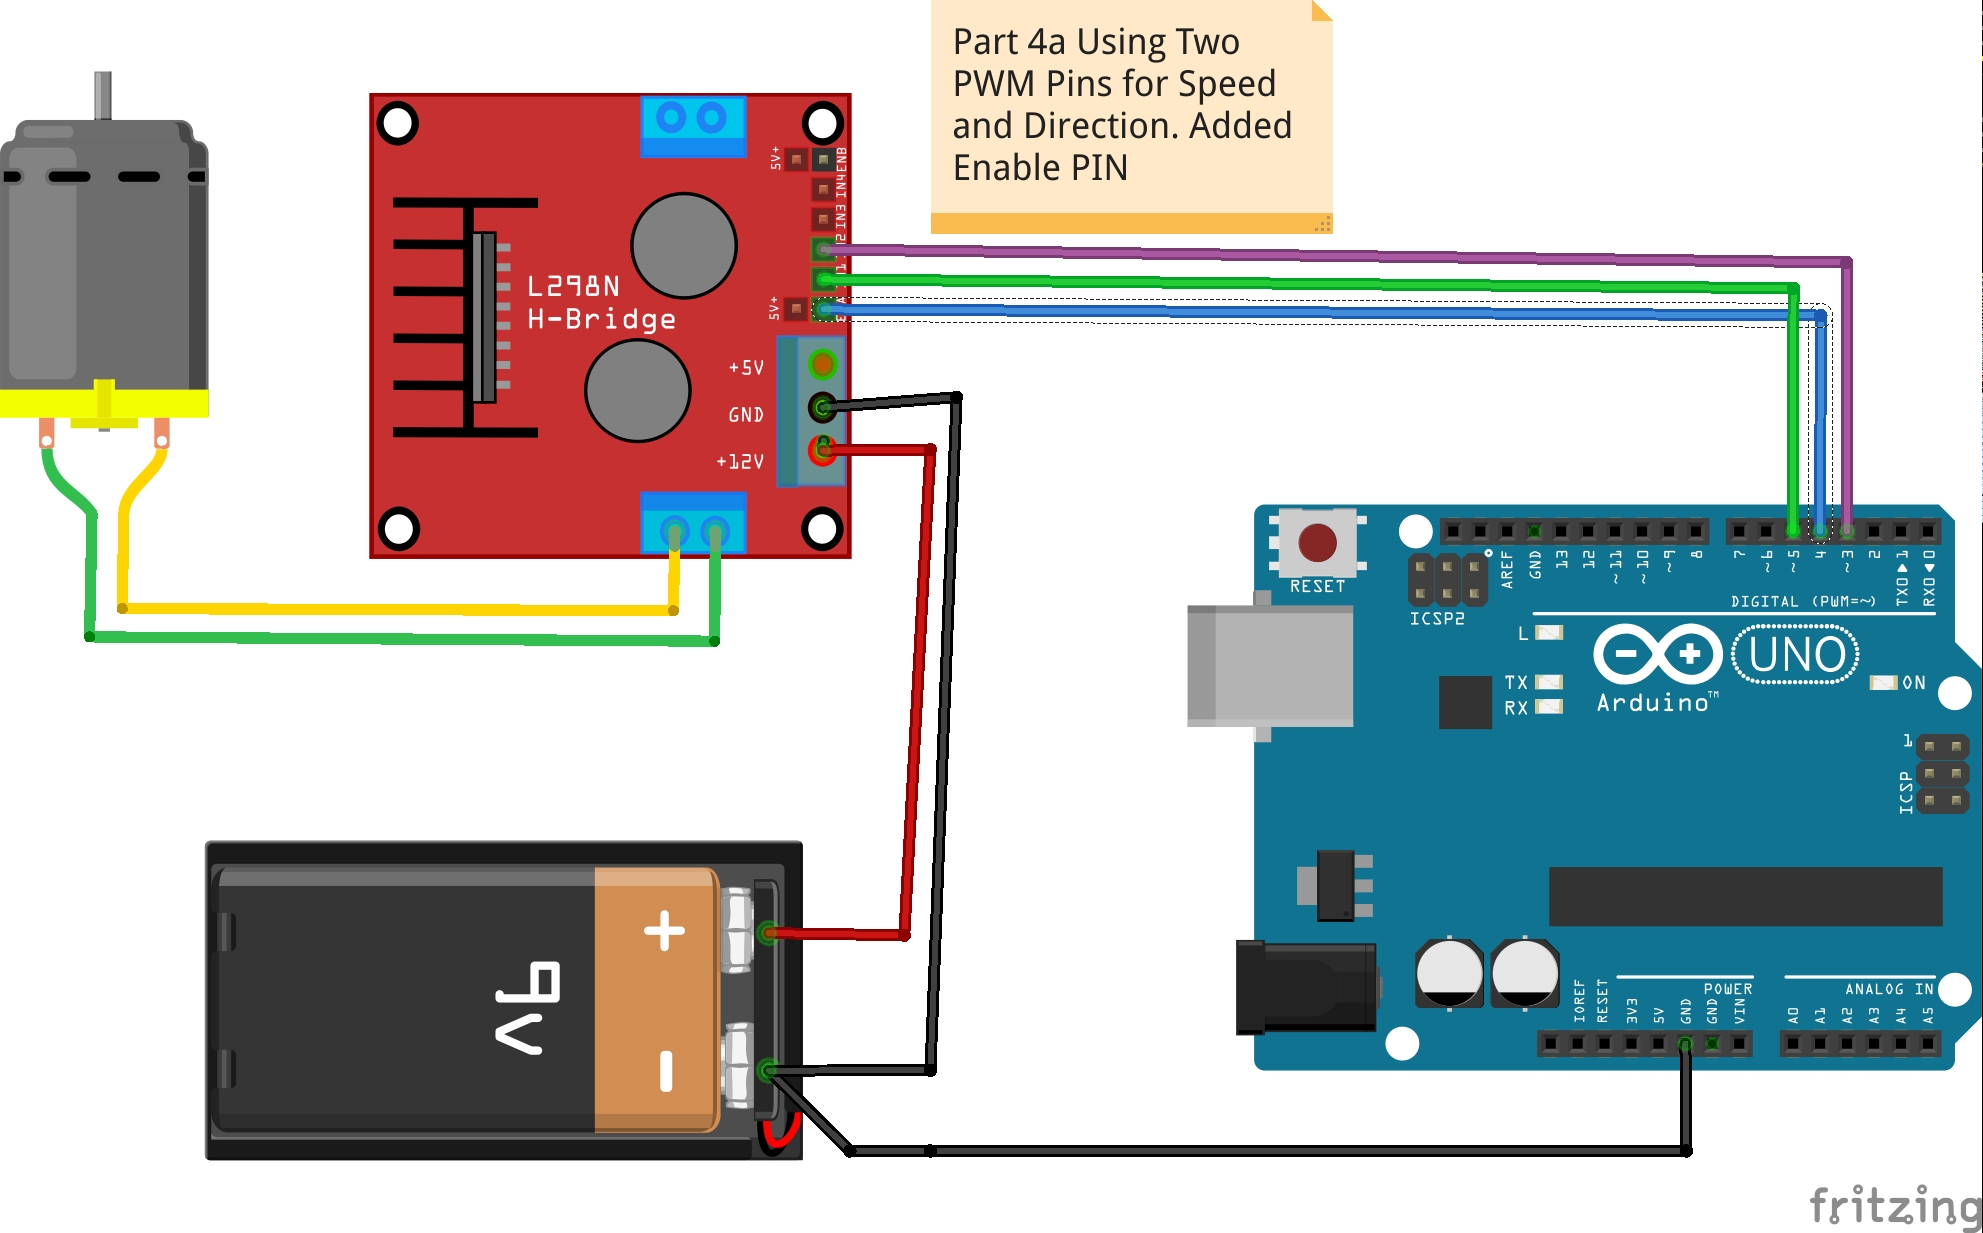 Picture of Part 4a - Speed and Direction Control Using Two PWM Pins & Enable.